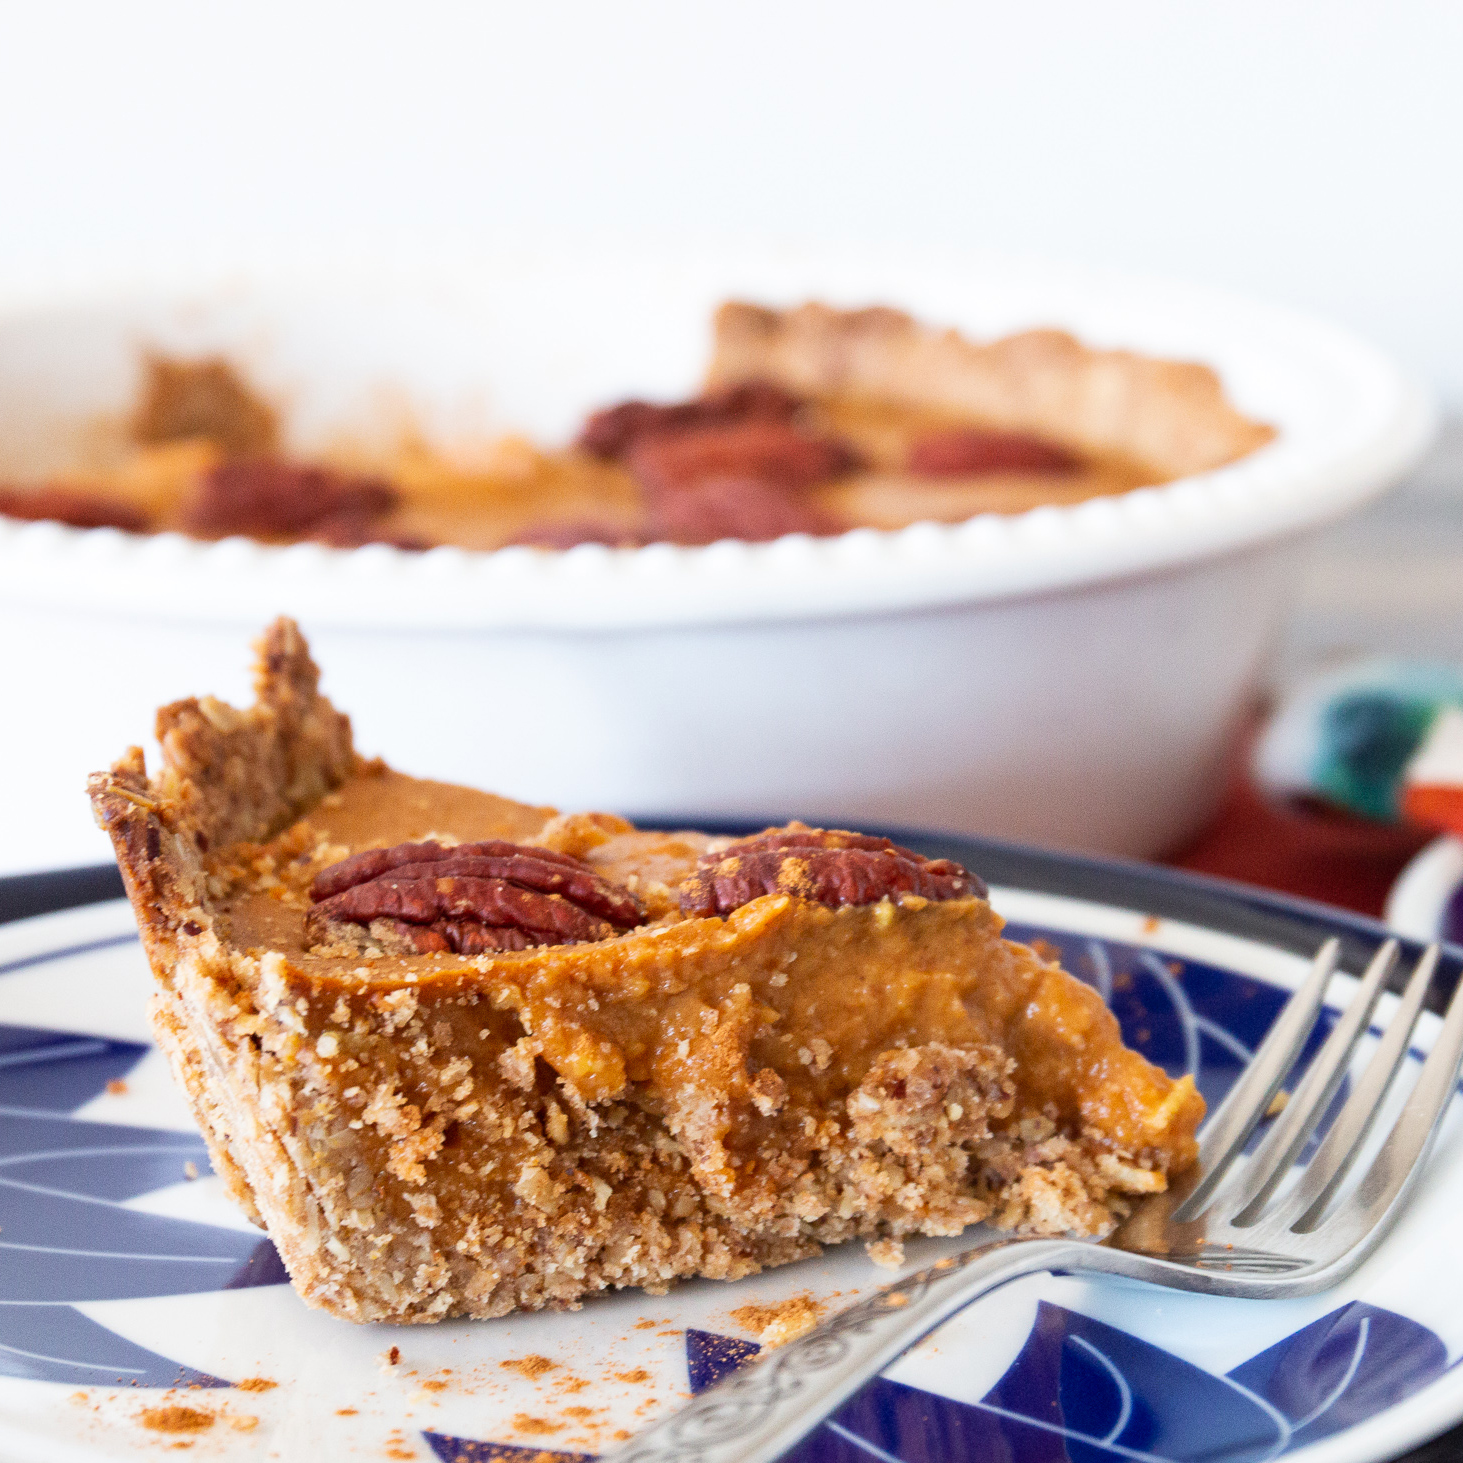 a slice of gluten-free pumpkin pie on a blue and white plate